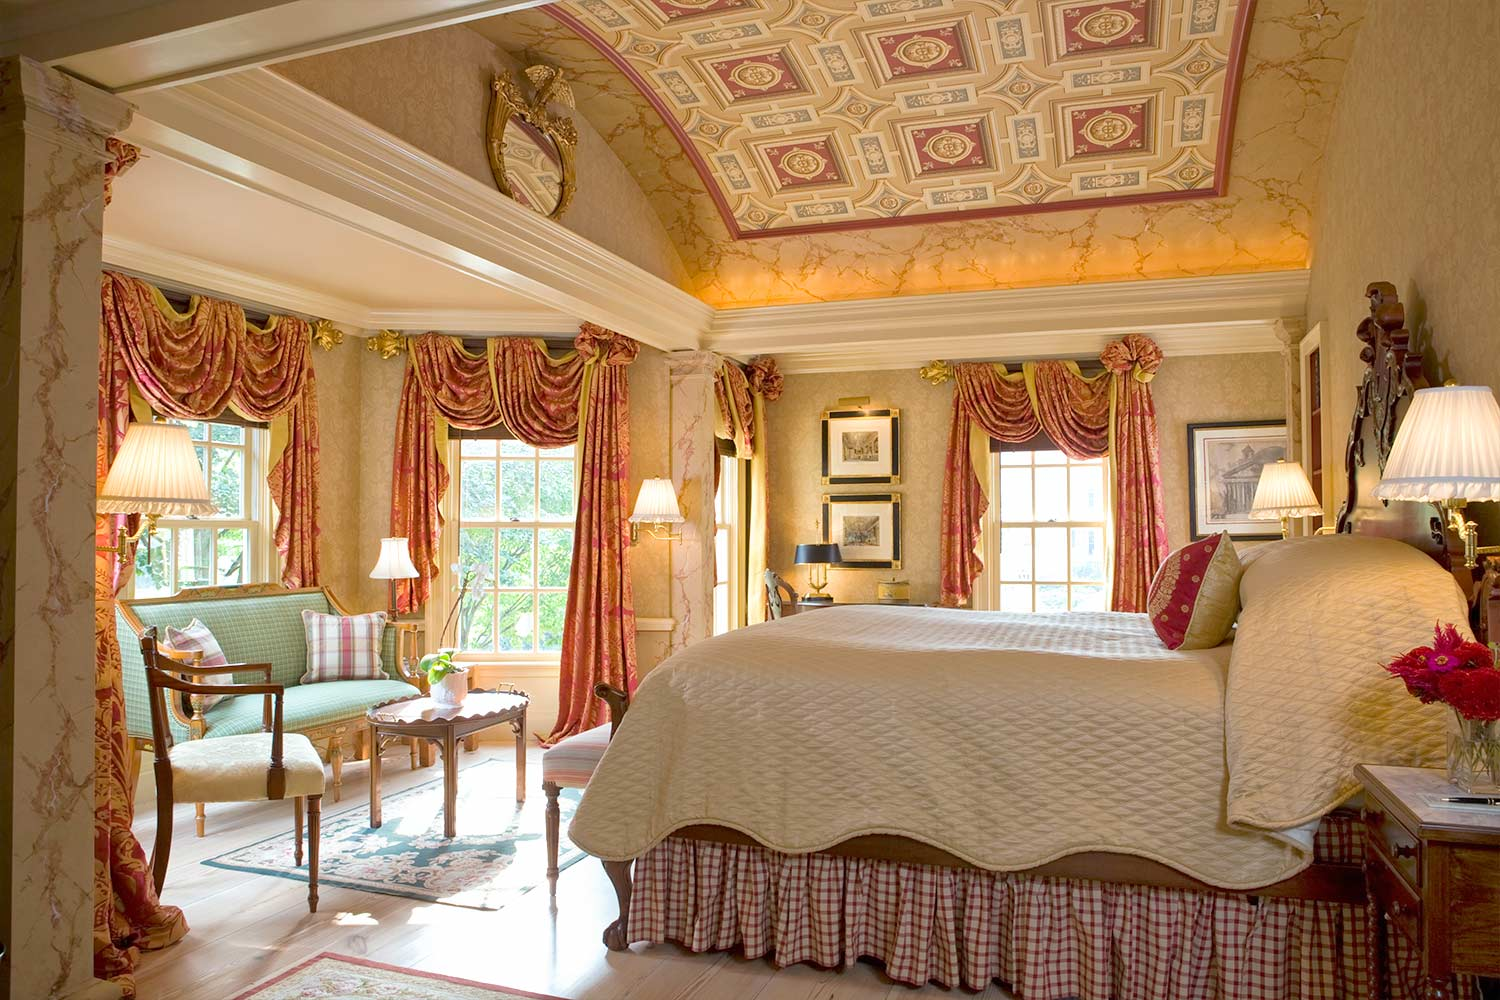 A very large master bedroom with a king sized bed, sitting area and ornate ceiling.